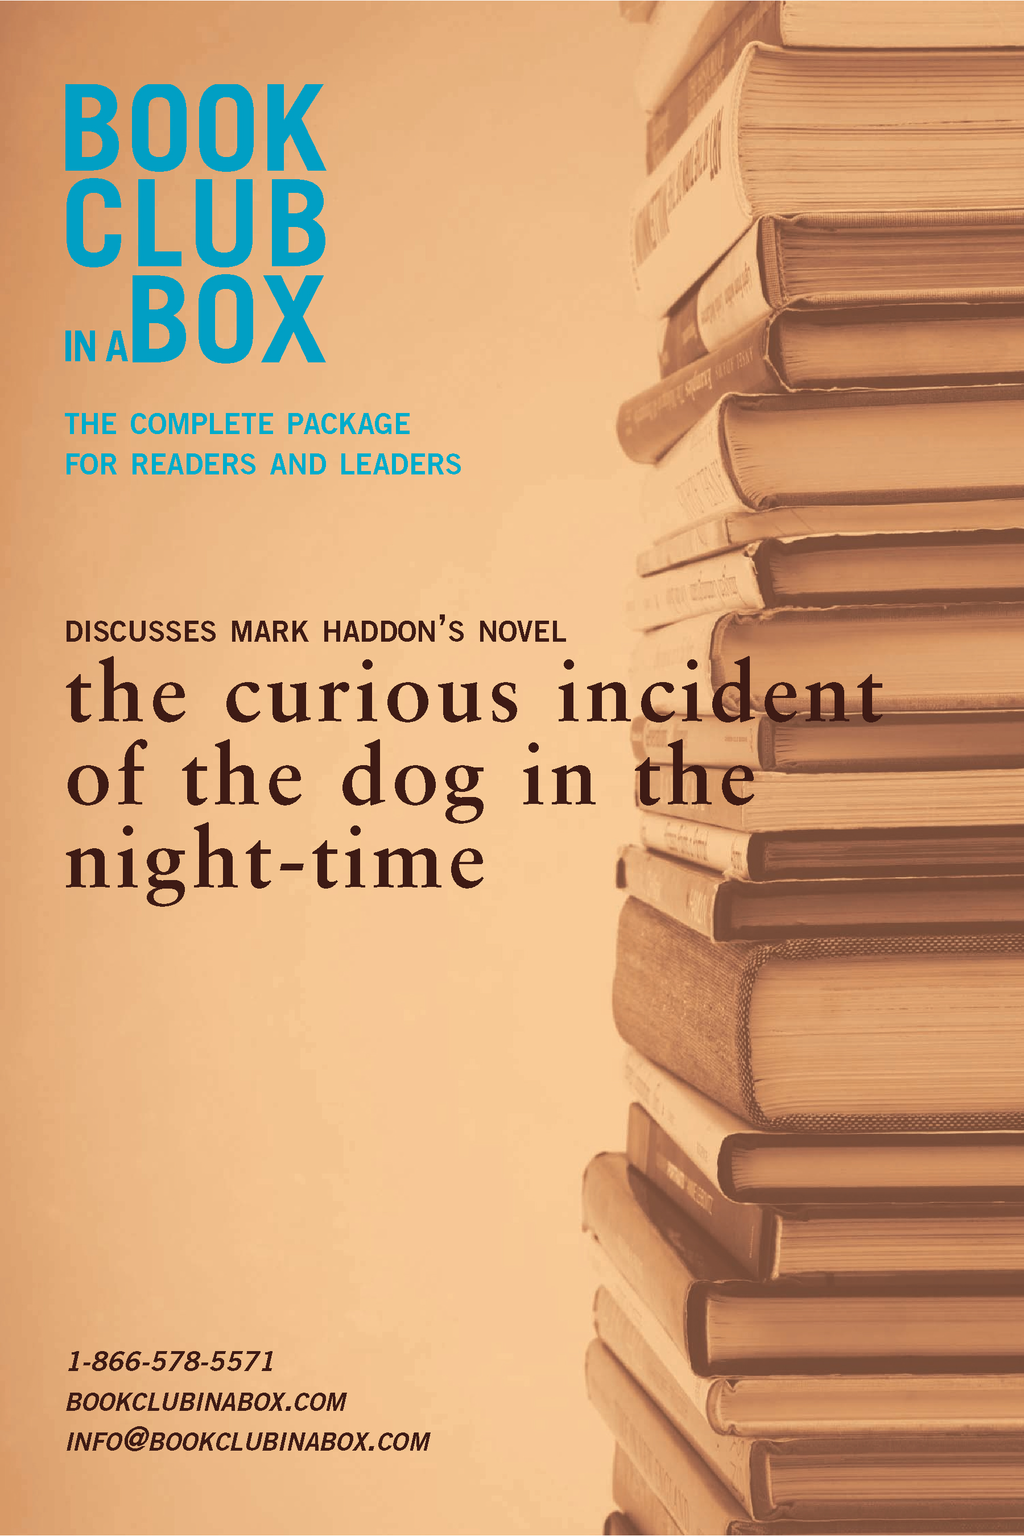 Bookclub-in-a-Box Discusses Mark Haddon's novel, the curious incident of the dog in the night-time: The complete package for readers and leaders By: Marilyn Herbert